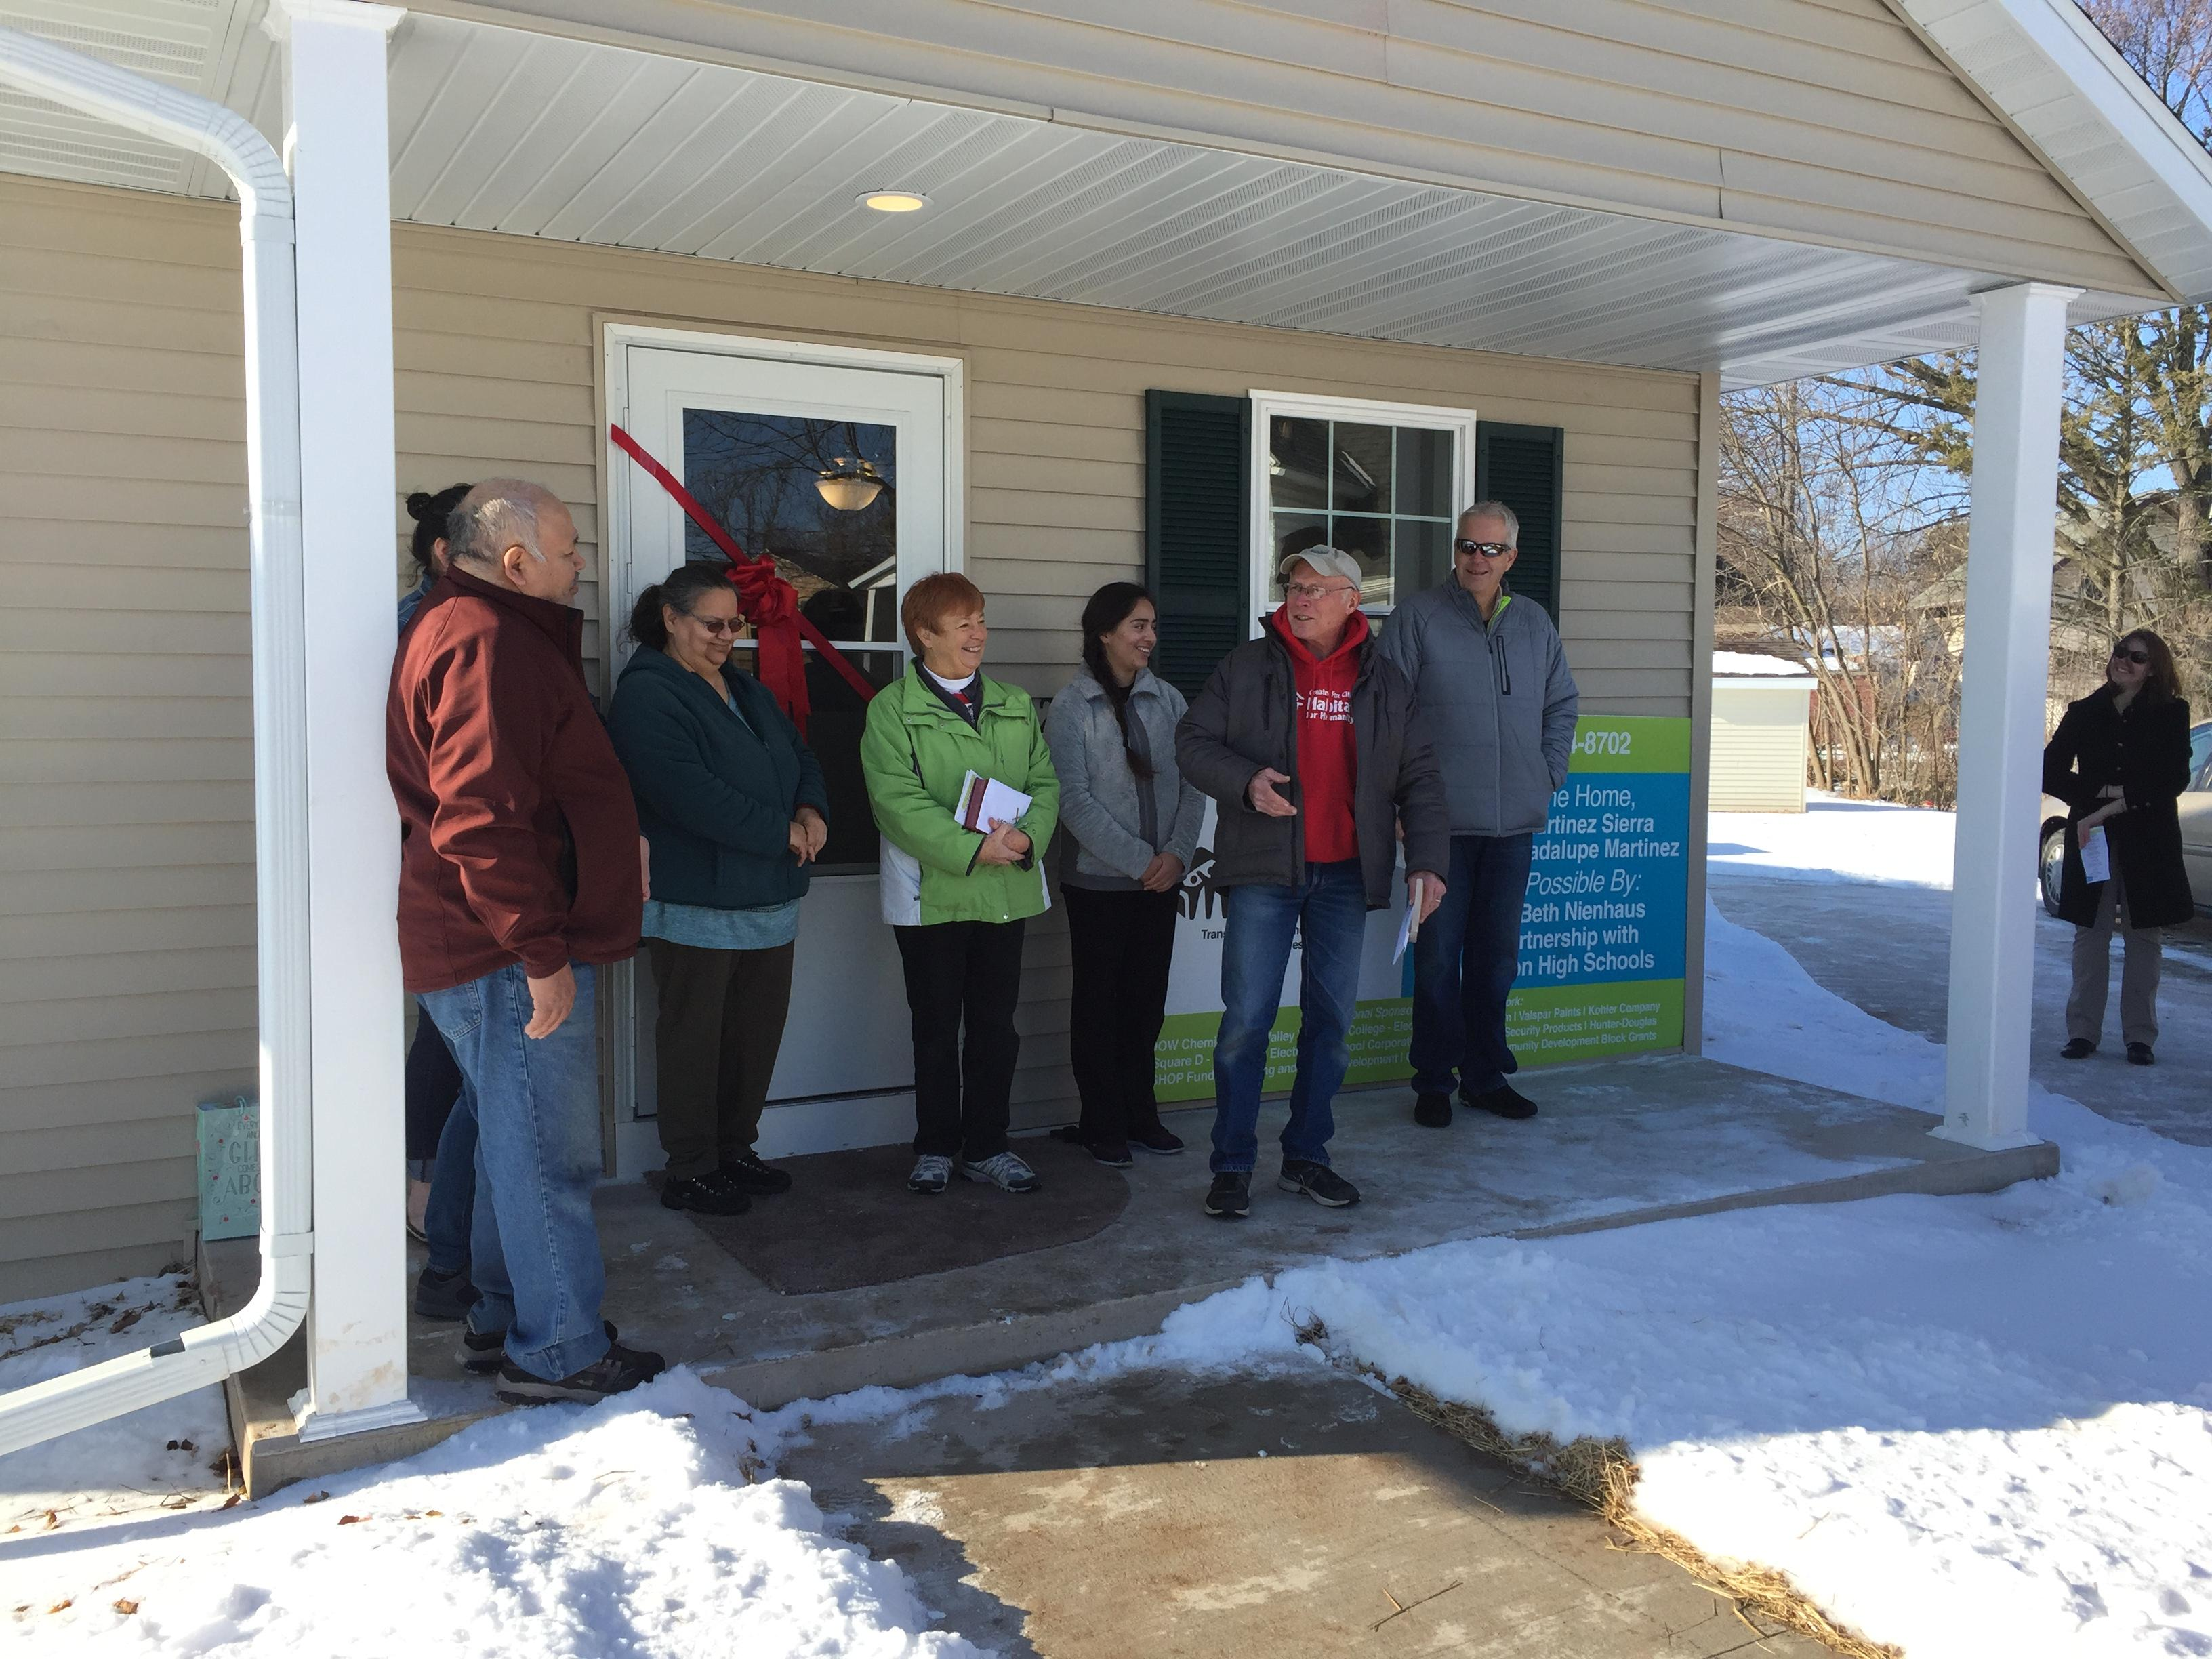 The Martinez Family gets the keys to their new home built by high school students through the Fox Cities Habitat for Humanity in Appleton, January 8, 2018. (WLUK)